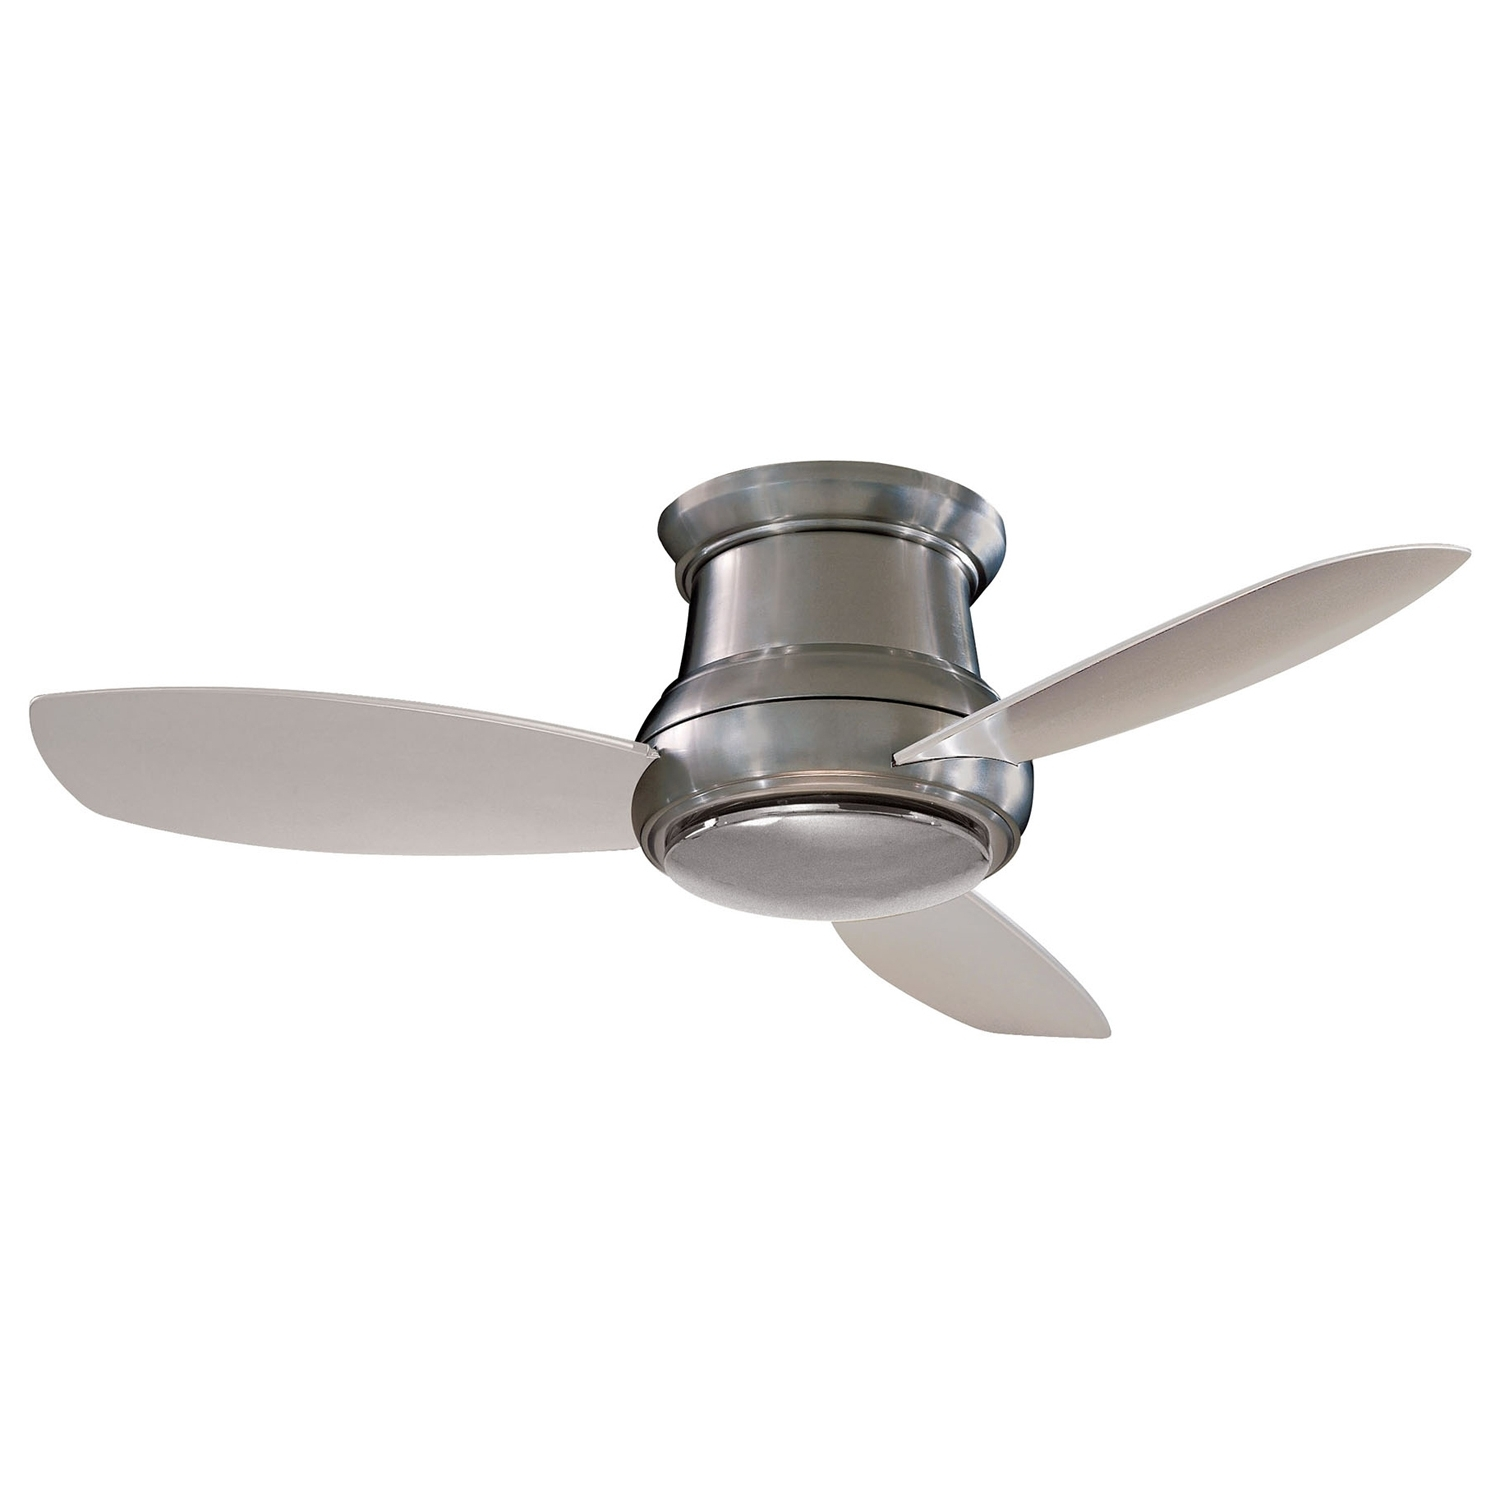 Ceiling Fan: Remarkable 36 Outdoor Ceiling Fan For Home 36 Inch Fans With Regard To Recent 36 Inch Outdoor Ceiling Fans With Lights (View 3 of 20)